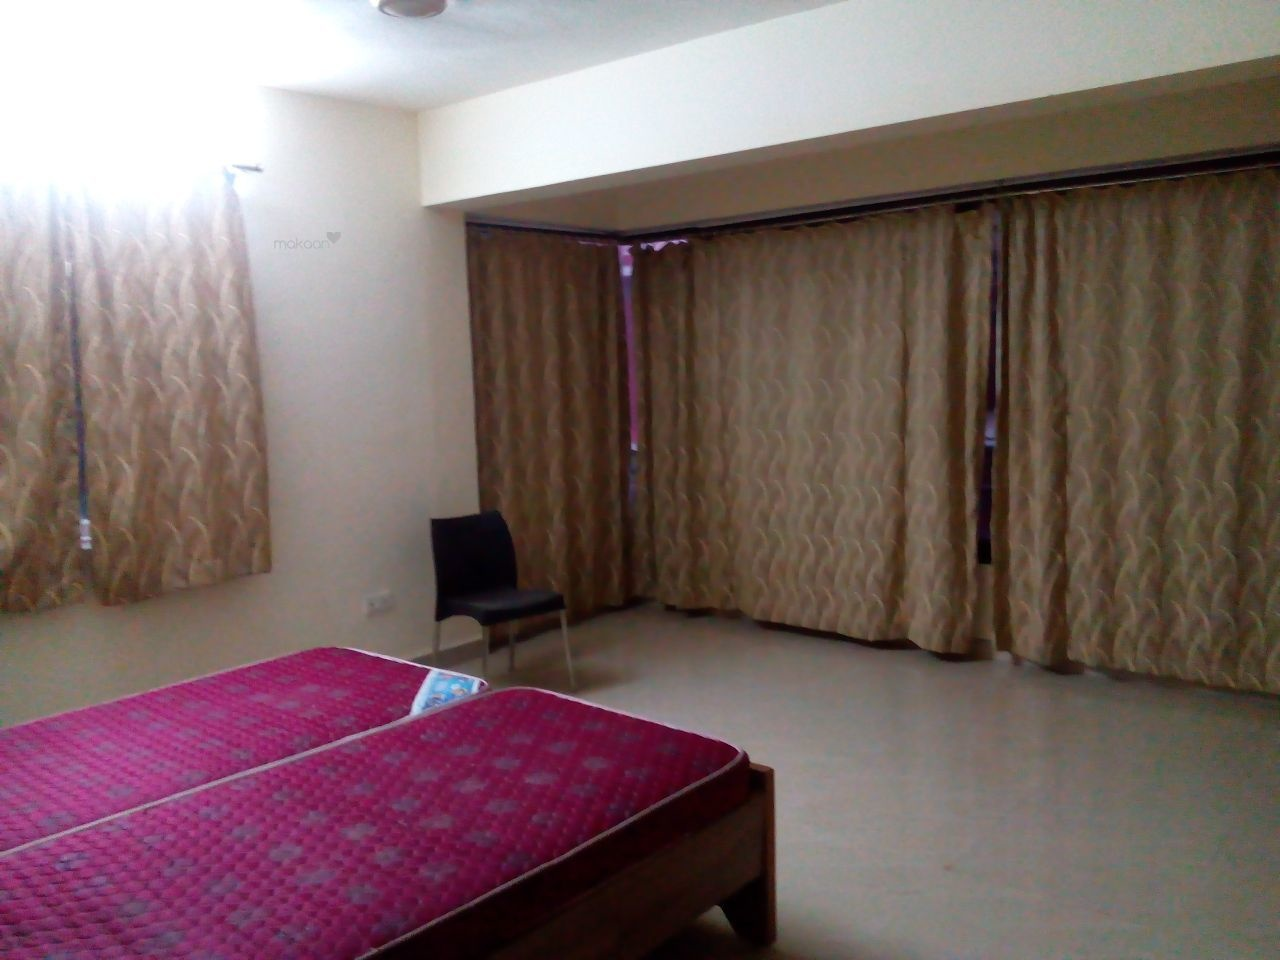 1937 sq ft 3BHK 3BHK+3T (1,937 sq ft) Property By Viva Goa Property In Project, Taleigao